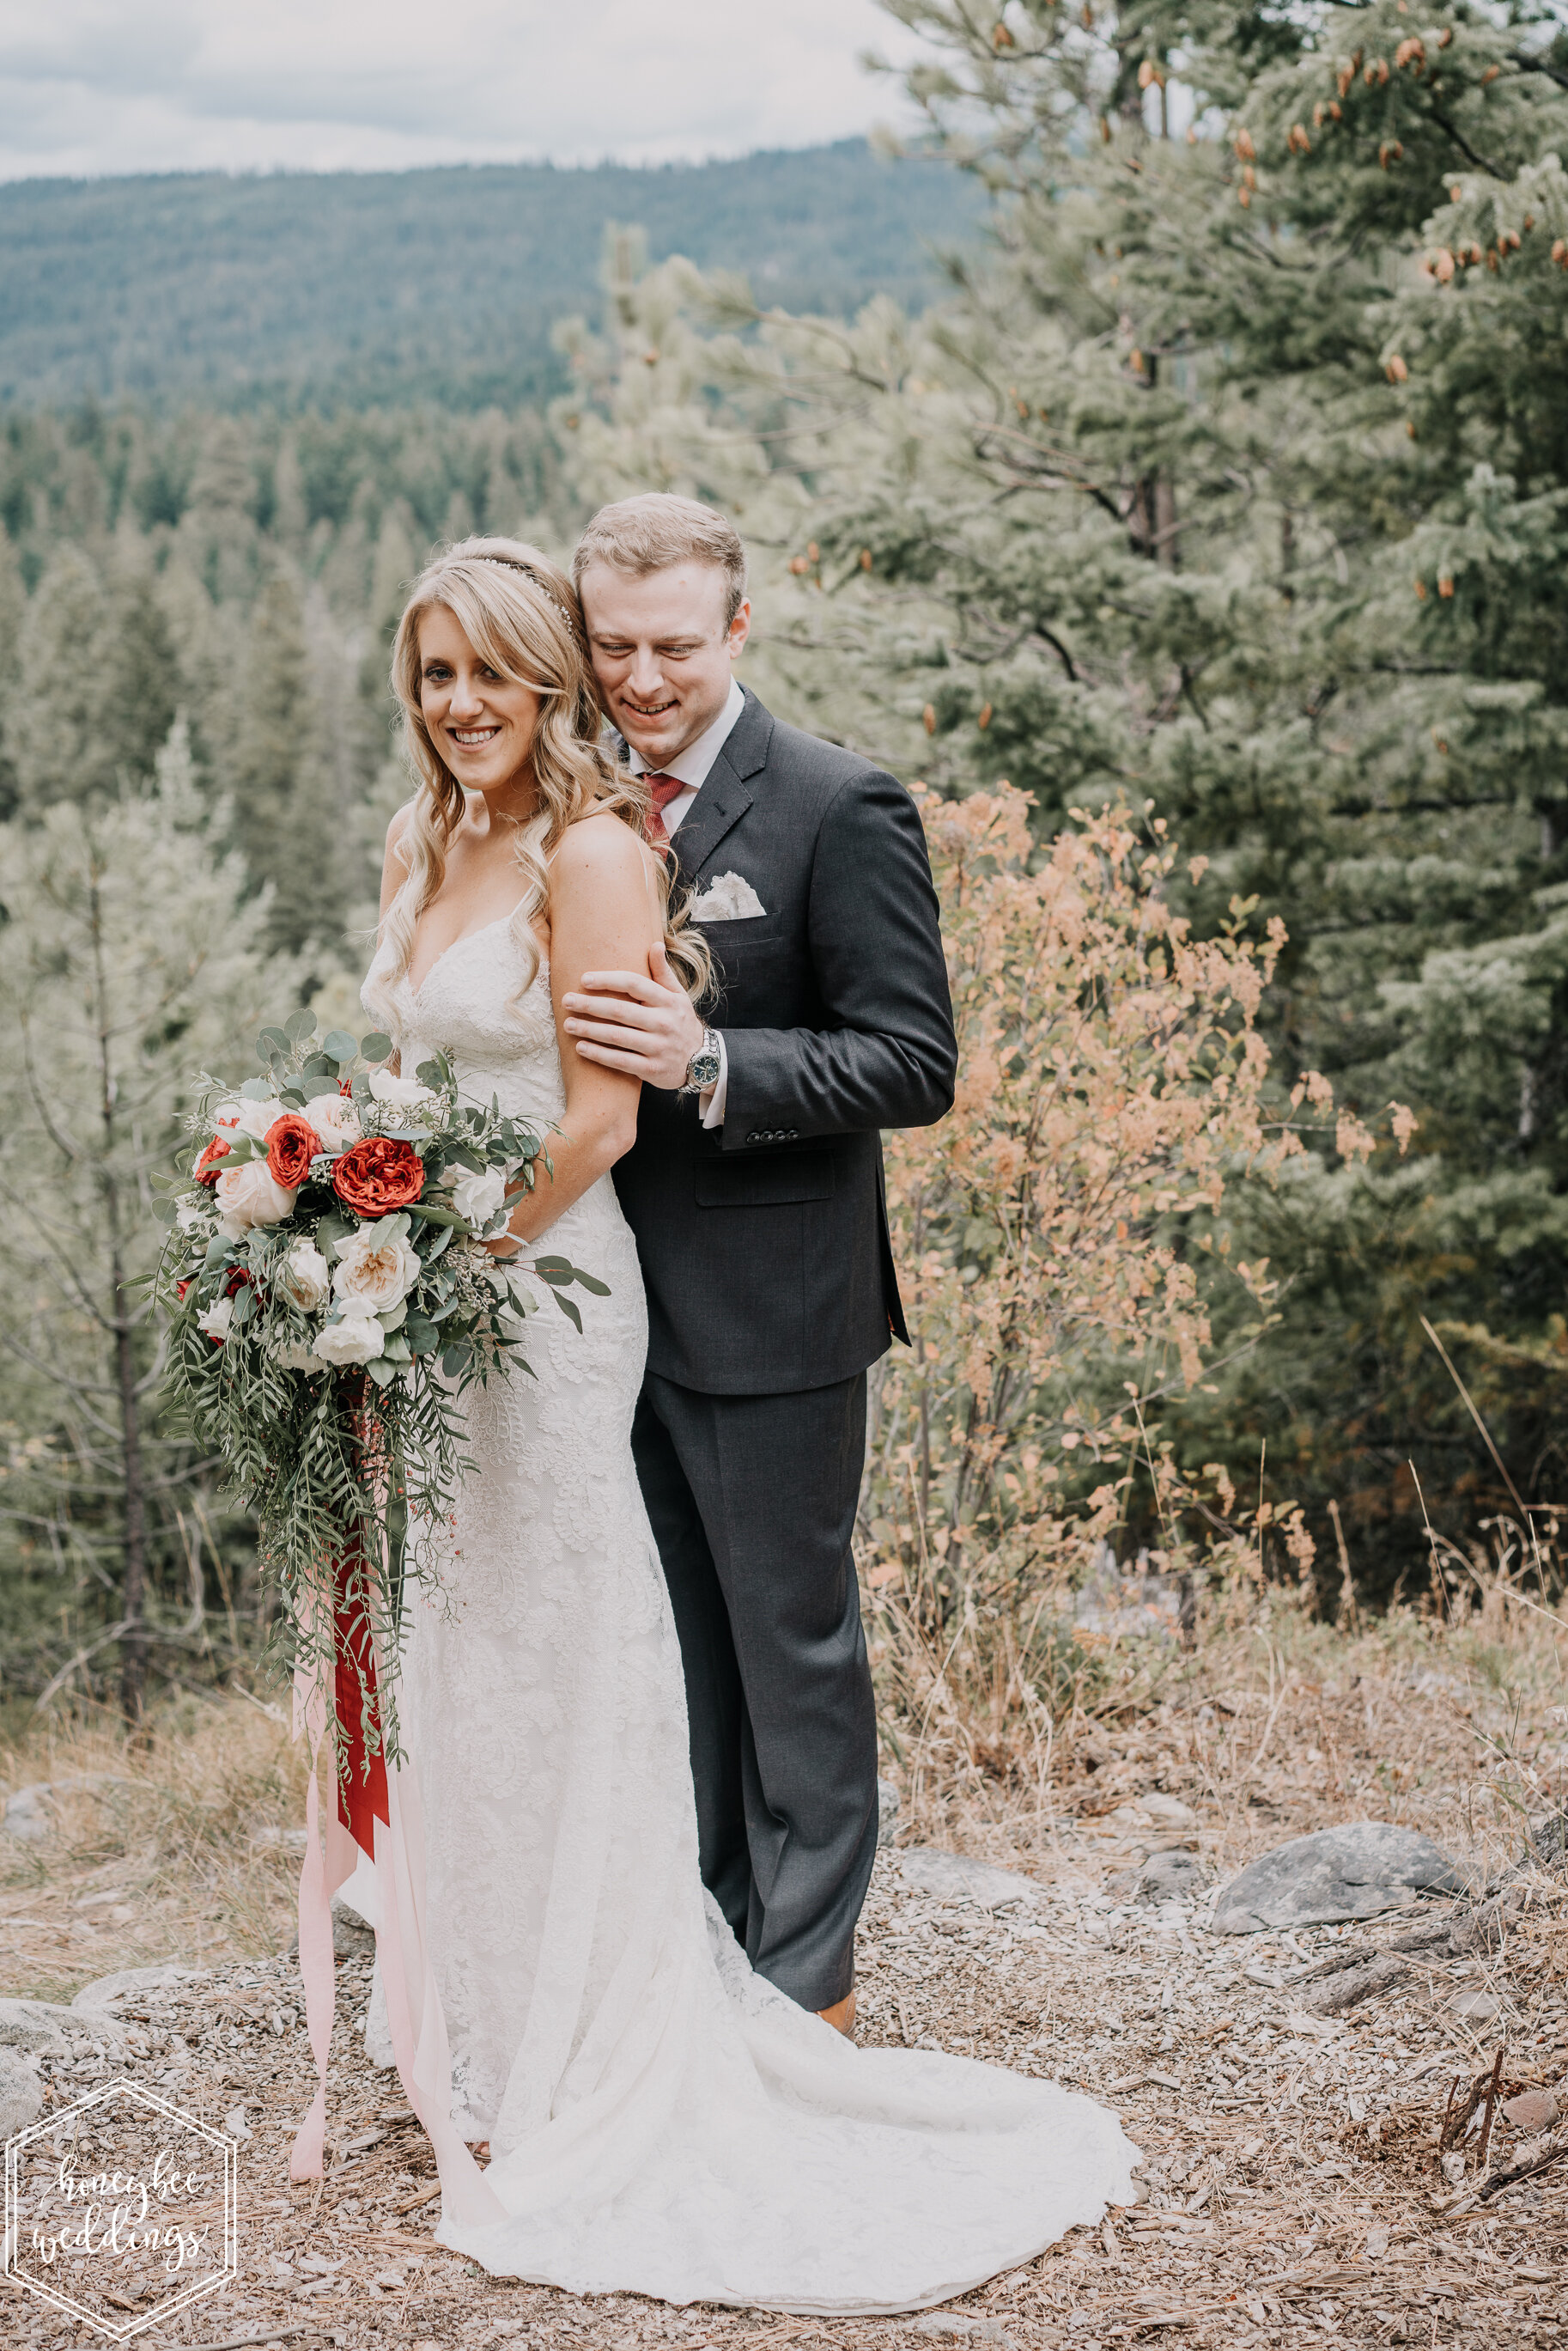 0054Swiftwater Cellars Wedding_Cle Elum Wedding_Montana Wedding Photographer_Kat & Kyle_September 15, 2018-511.jpg